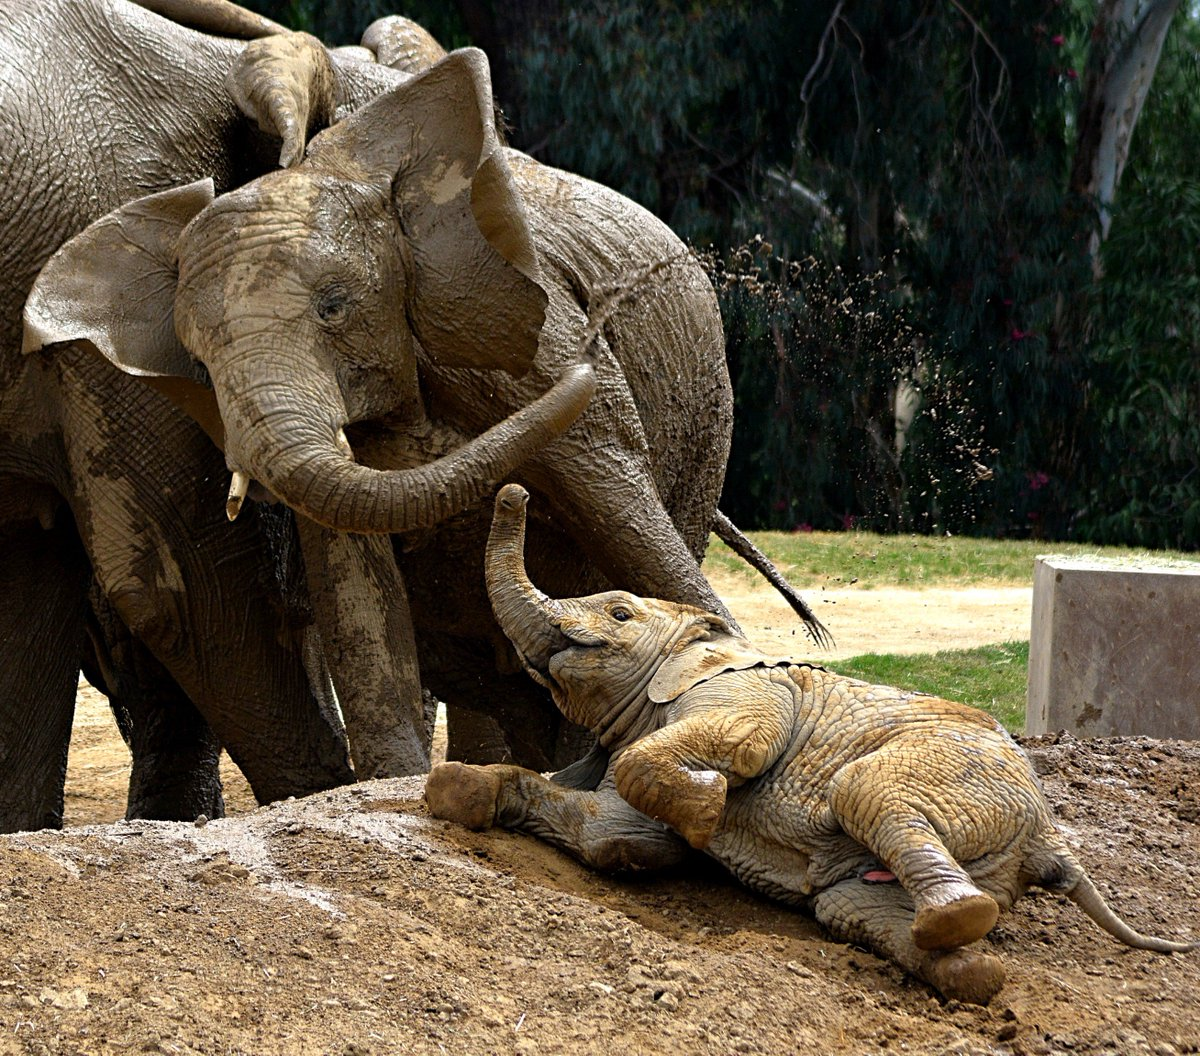 Just another case of the mud-days.  #MondayMotivation #PachydermPair Keeper Evan <br>http://pic.twitter.com/5YpKk1GRlG